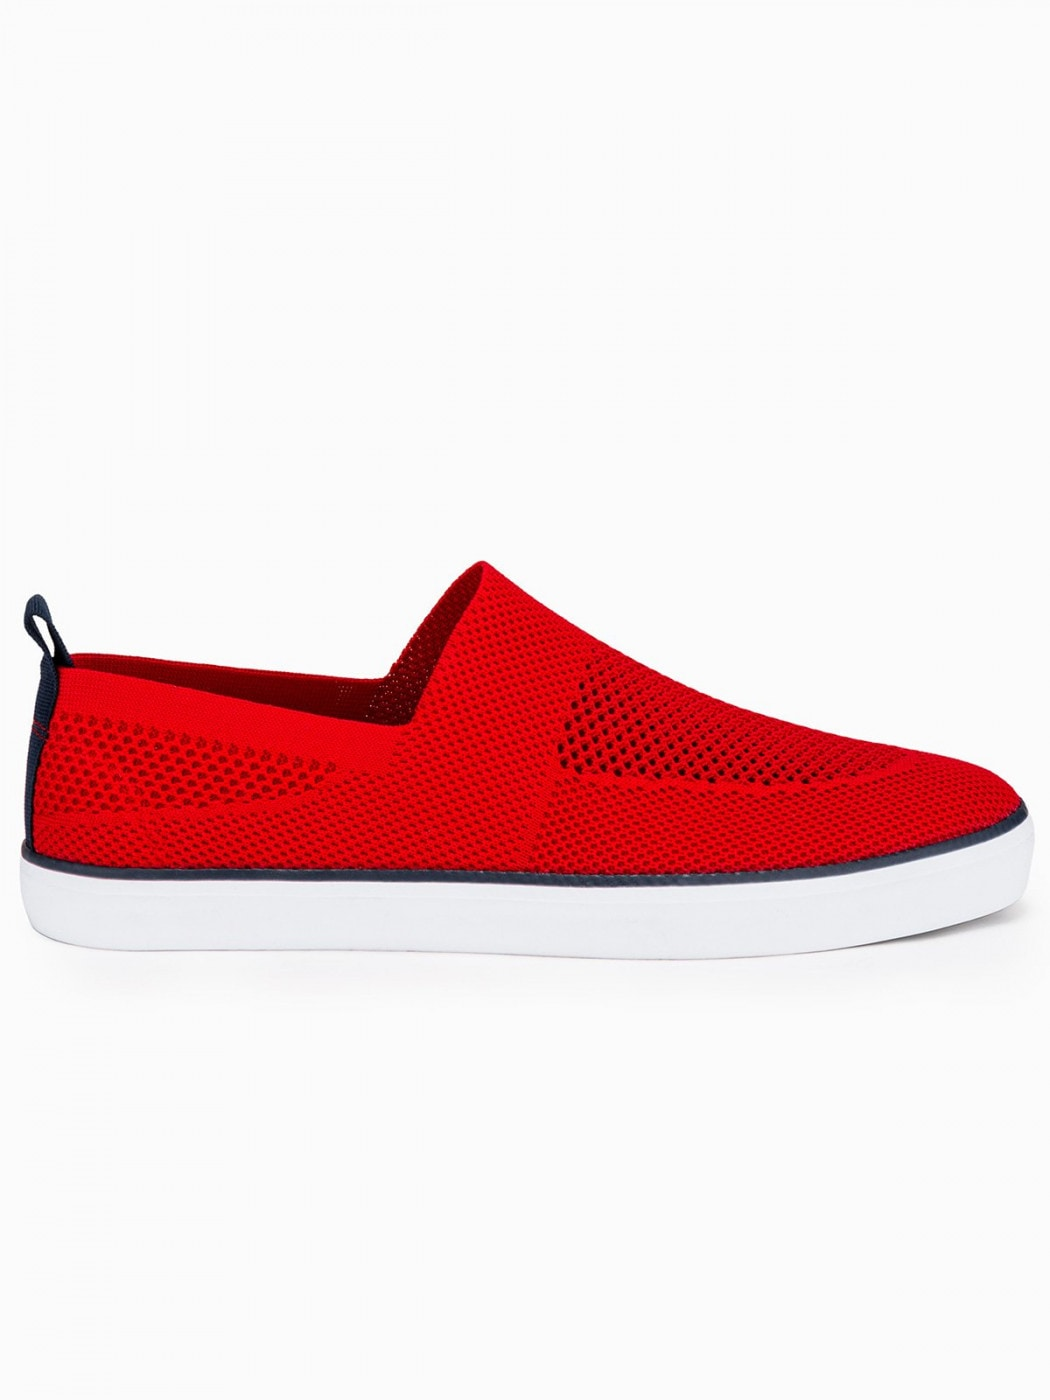 Ombre Clothing Men's slip on trainers T308